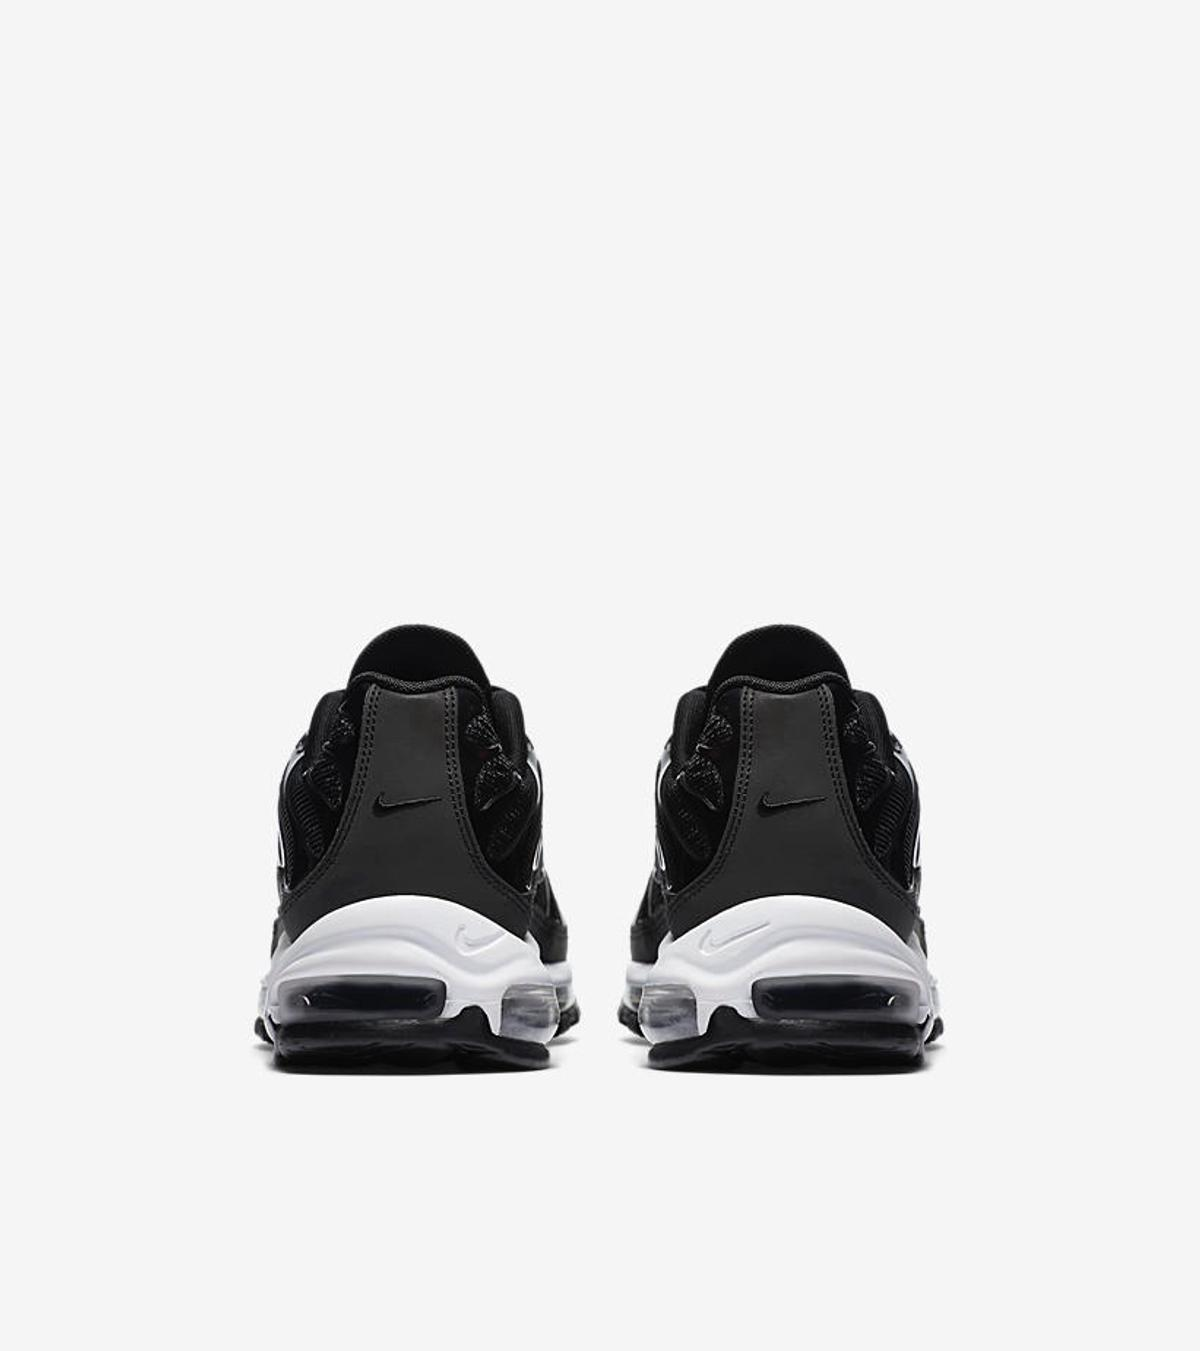 NIKE AIR MAX 97 TUNE UP HYBRID in DY5 Dudley für 180,00